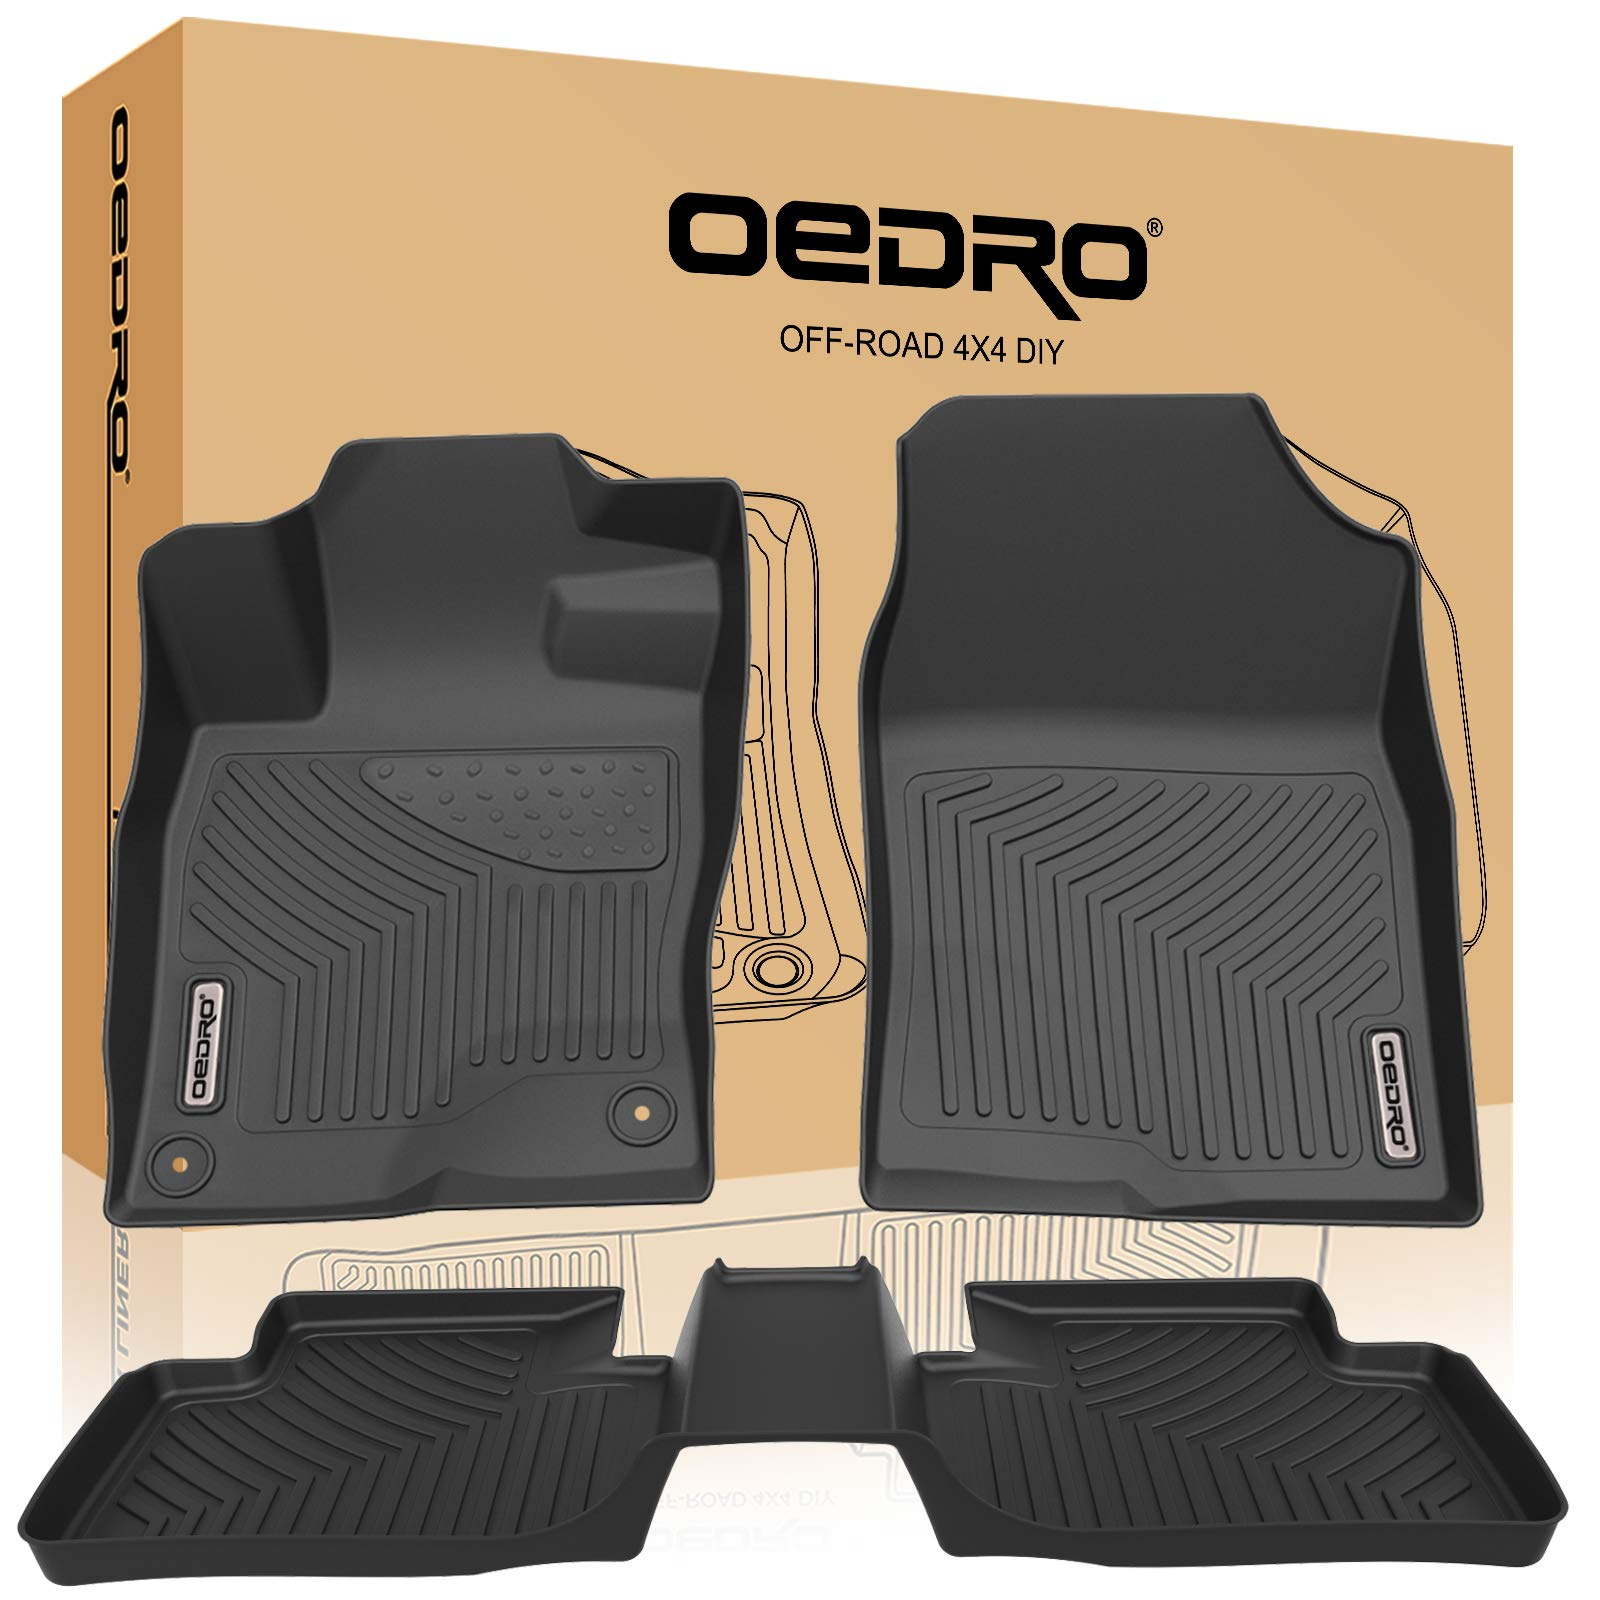 oEdRo Floor Mats Compatible for 2016-2019 Honda Civic Sedan/Civic Hatchback/Civic Type R, Unique Black TPE All-Weather Guard Includes 1st and 2nd Row: Front, Rear, Full Set Liners